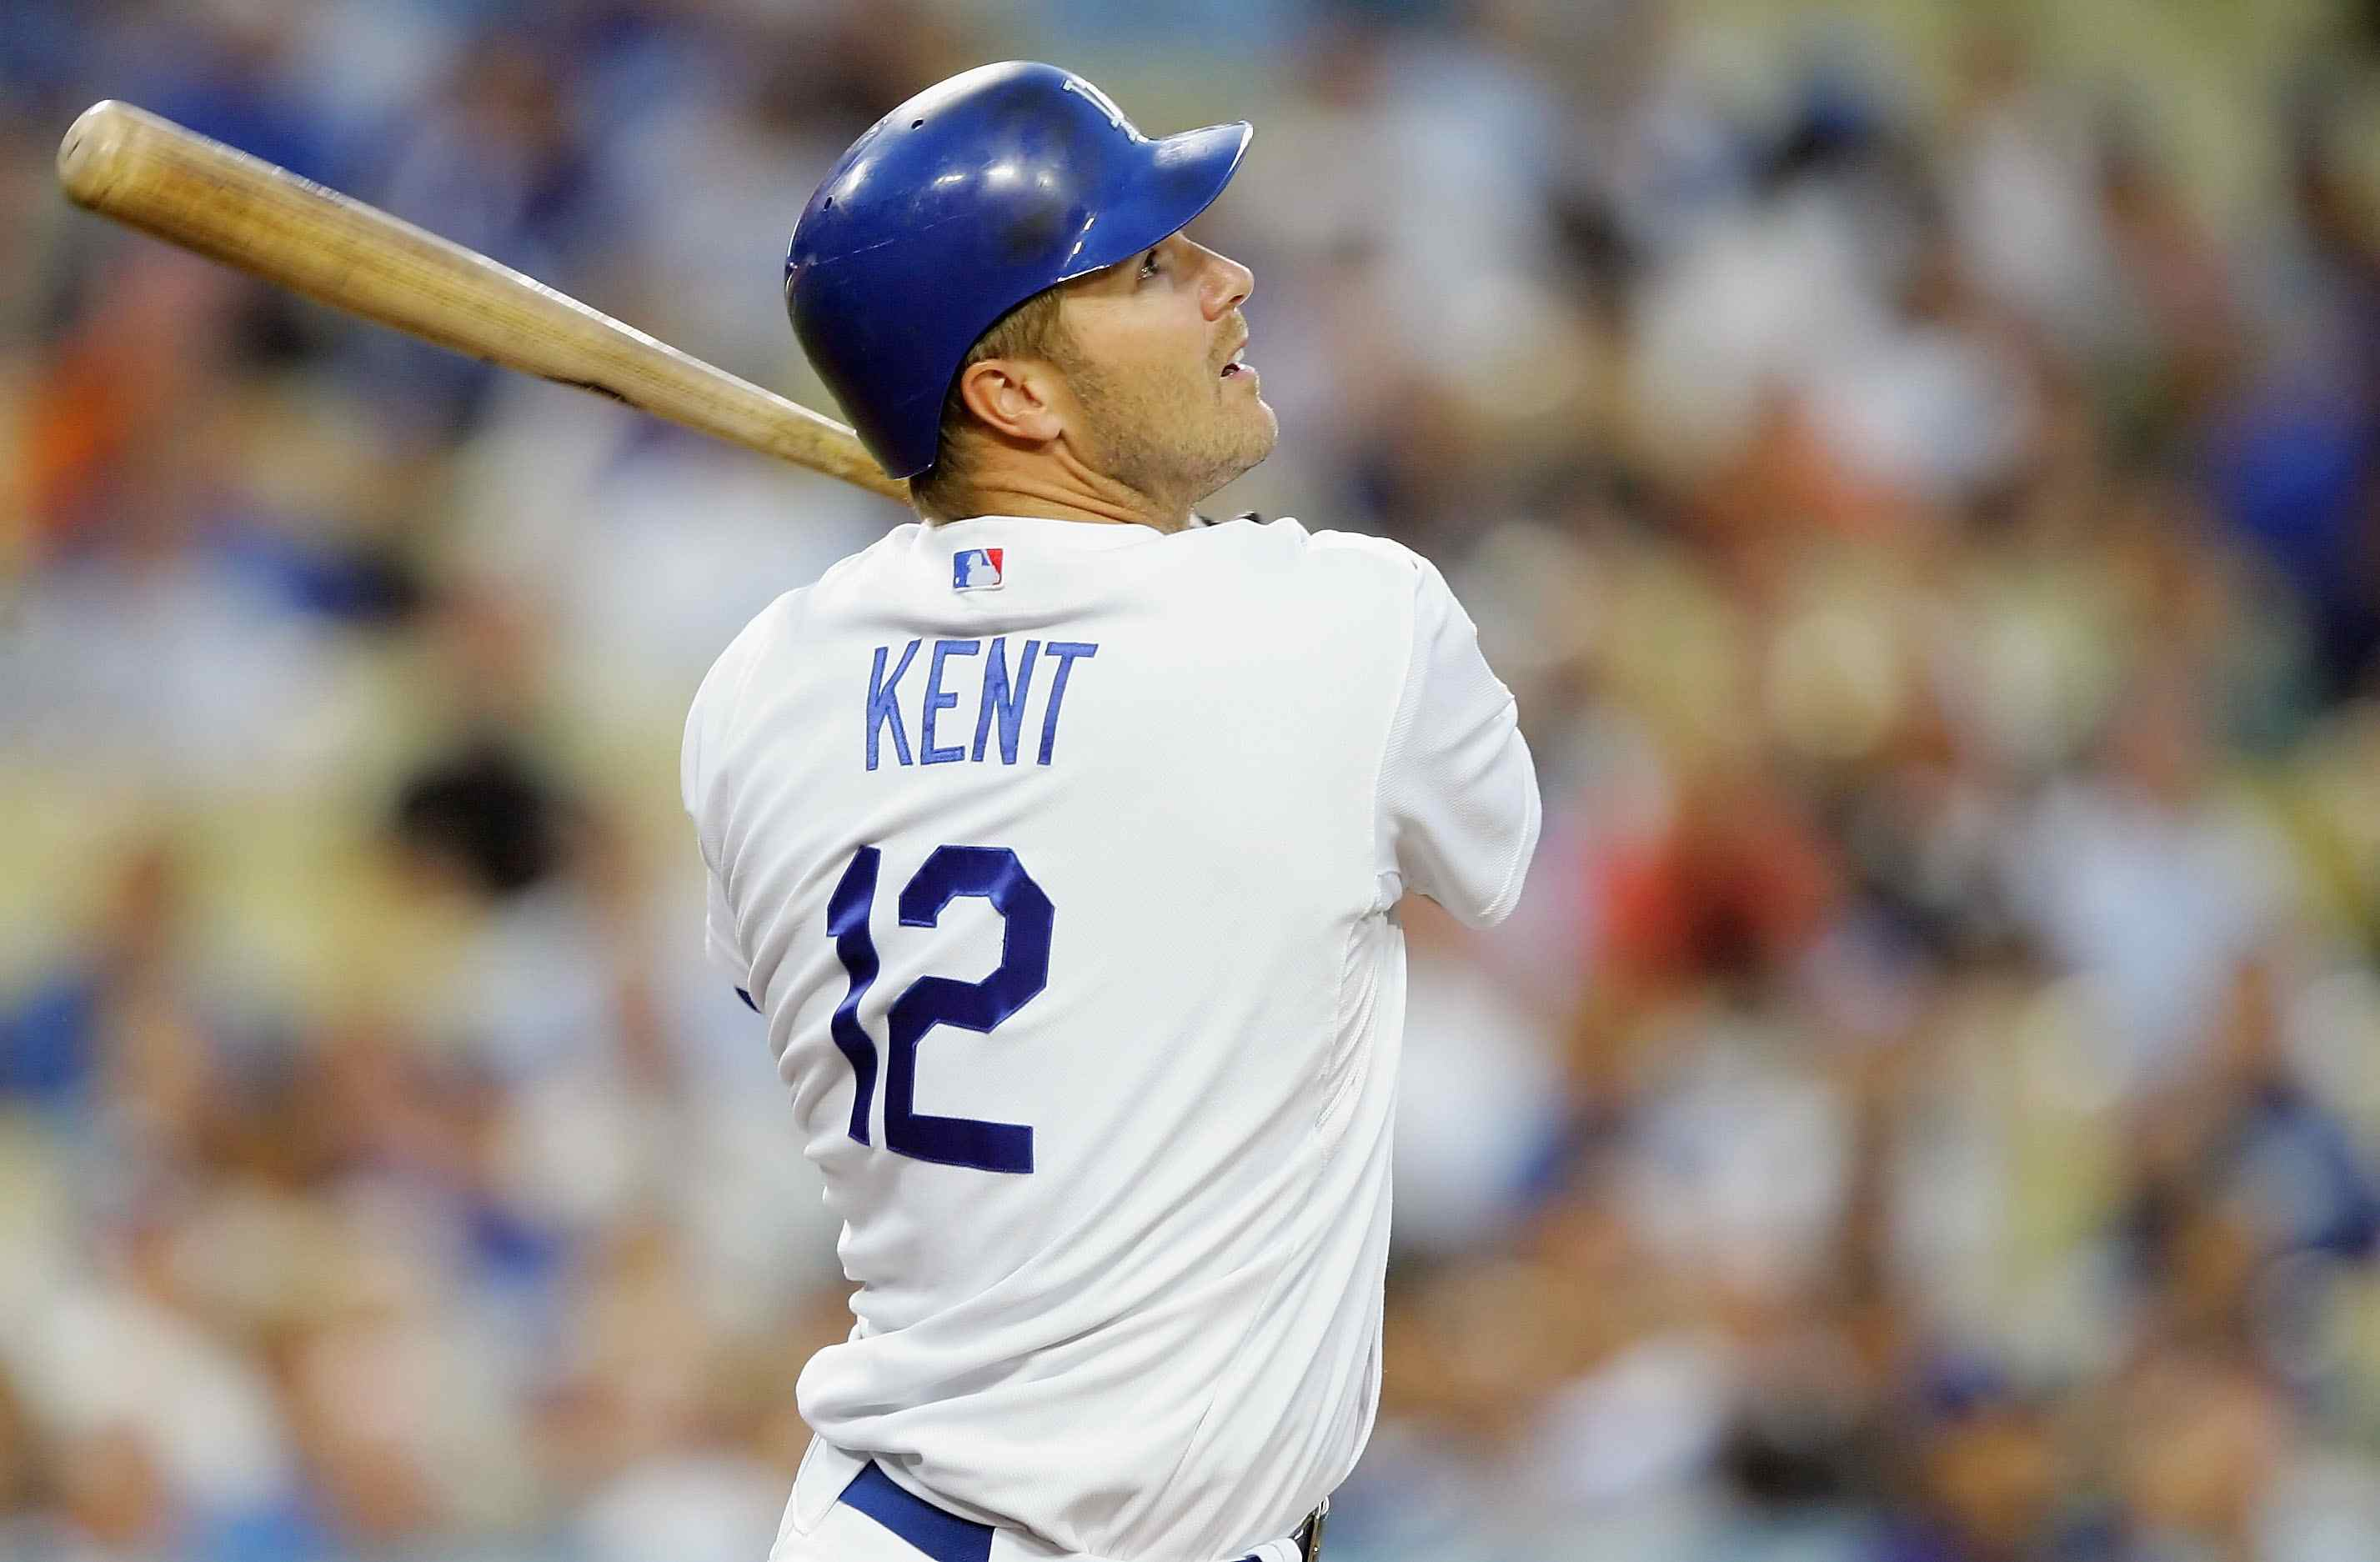 Jeff Kent #12 of the Los Angeles Dodgers at bat during the game against the Colorado Rockies at Dodger Stadium on August 20, 2008 in Los Angeles, California.